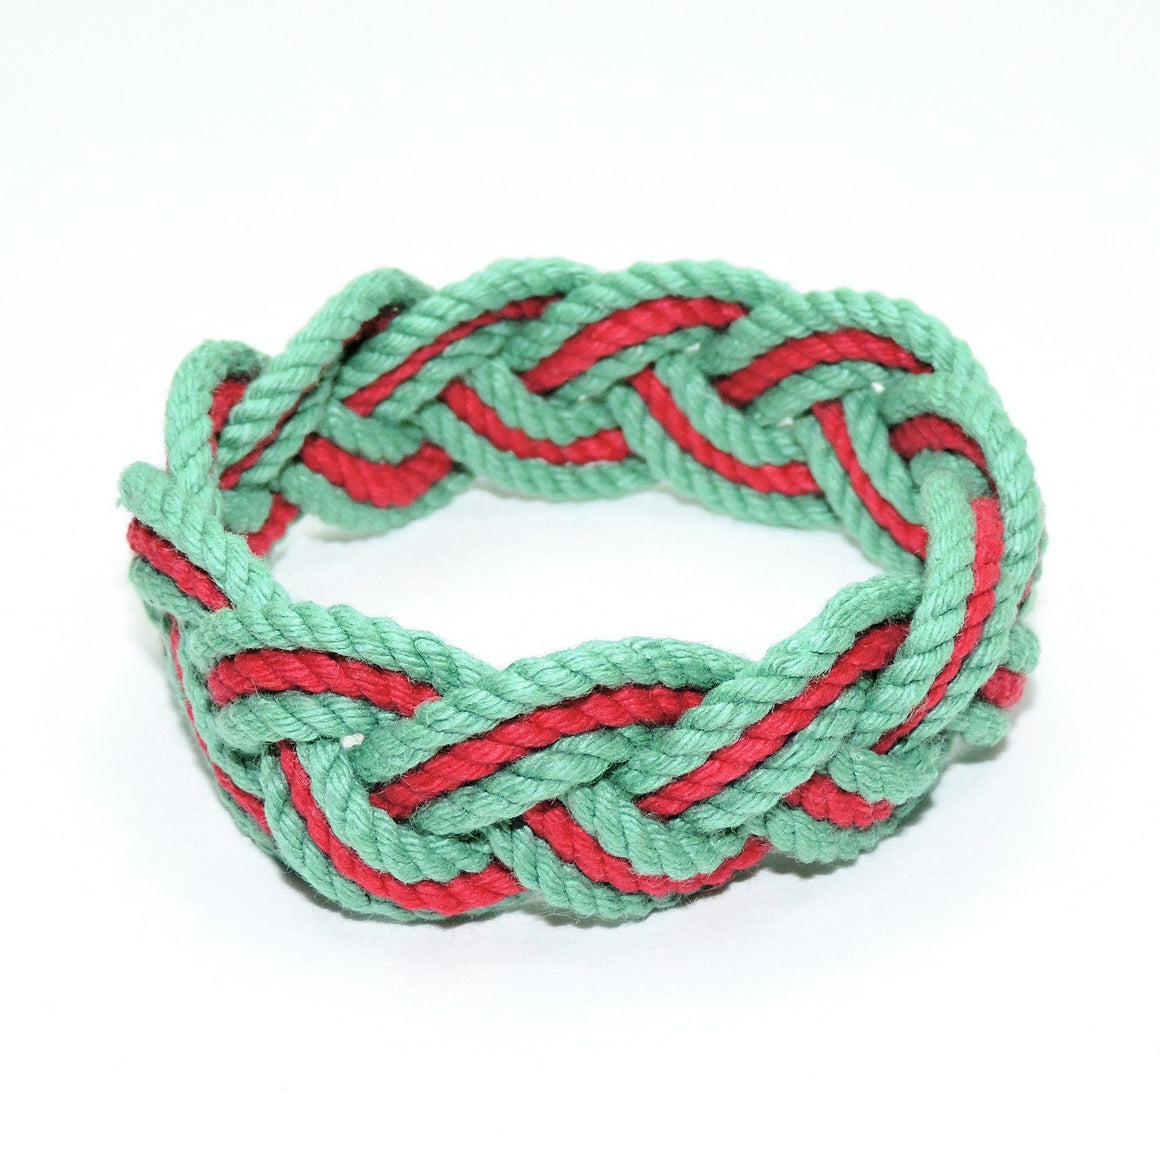 Striped Sailor Knot Bracelet, Christmas Colors - Mystic Knotwork nautical knot